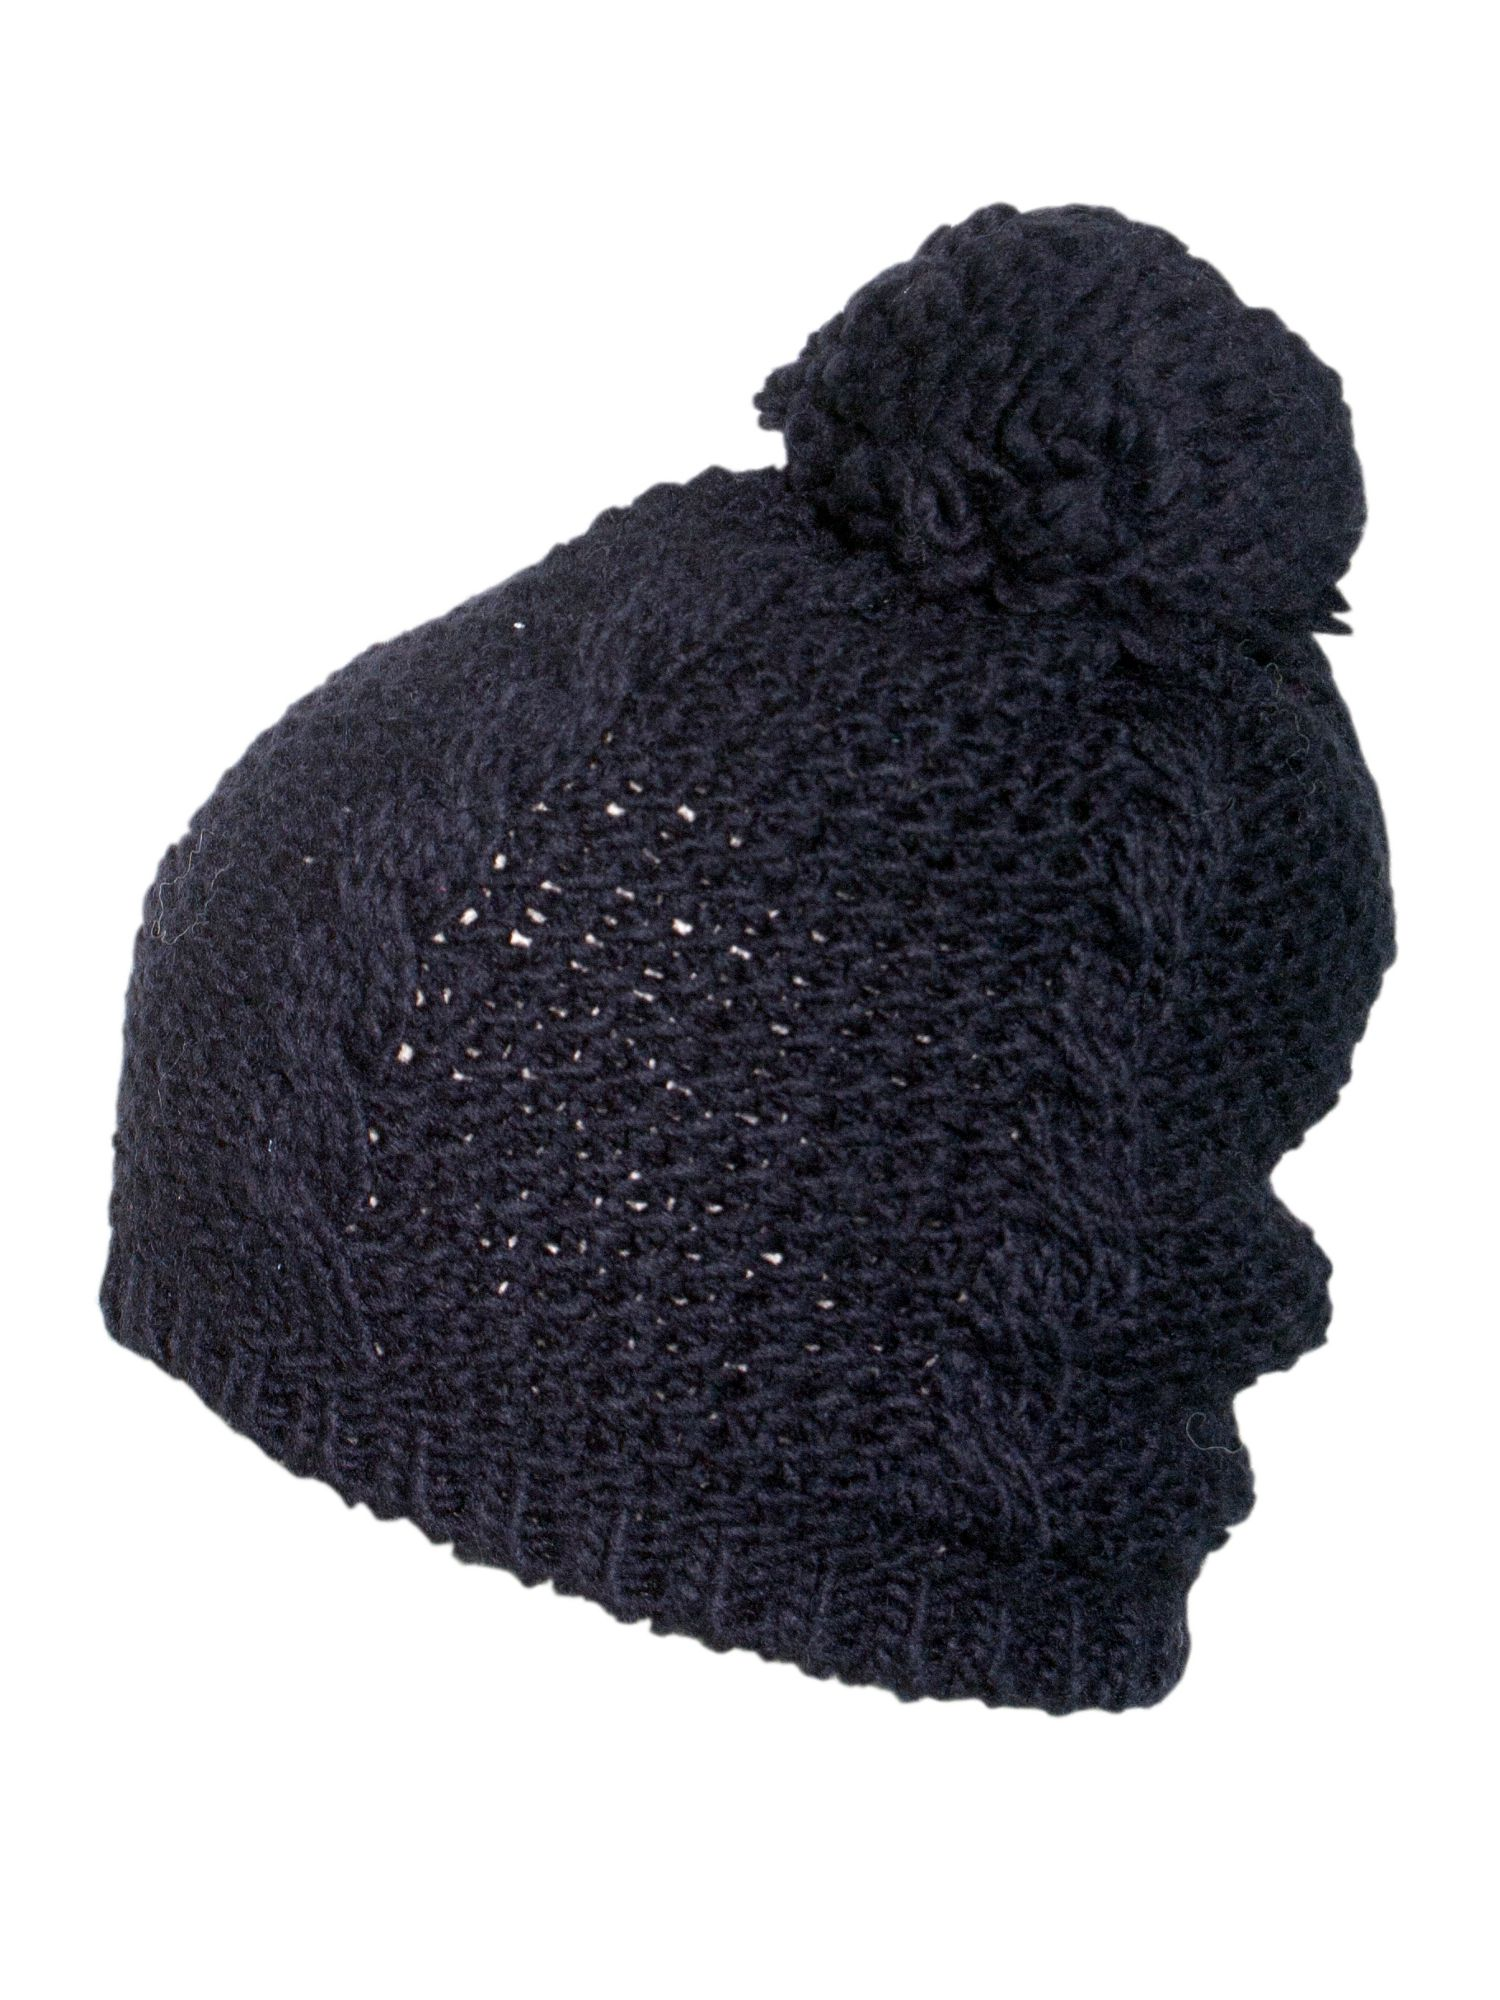 Werena bobble hat